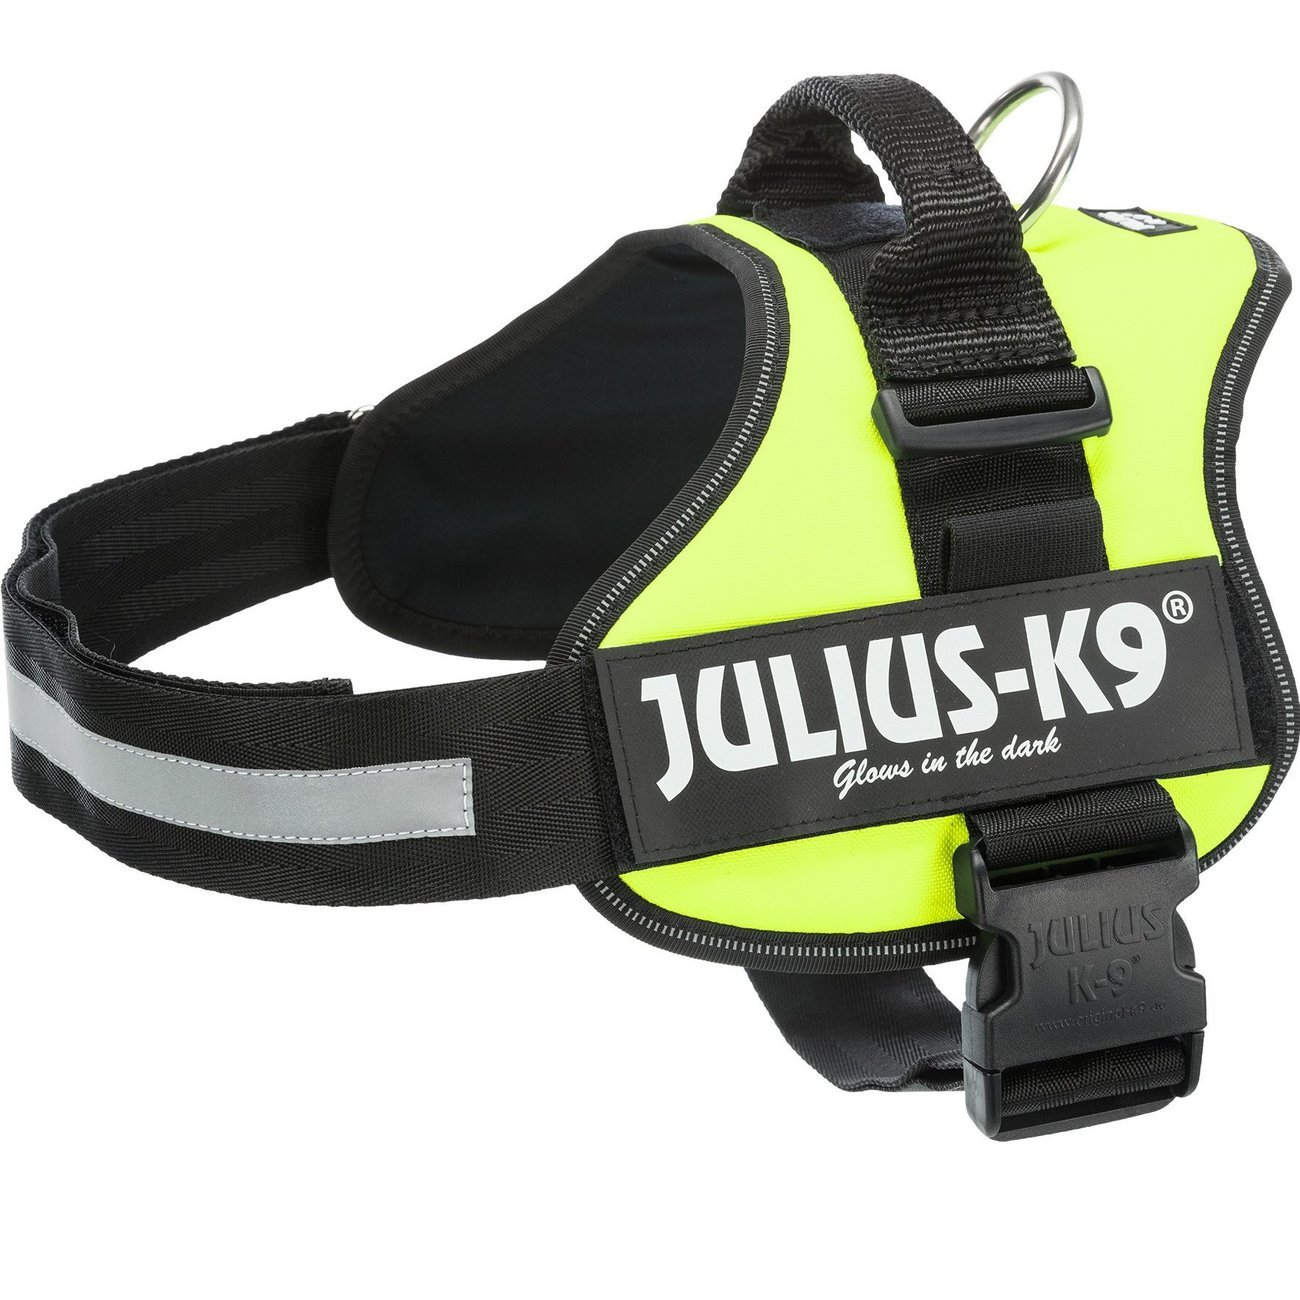 Julius K9 Powergeschirr Hundegeschirr, XS/Mini-Mini: 40–53 cm/22 mm, neongrün